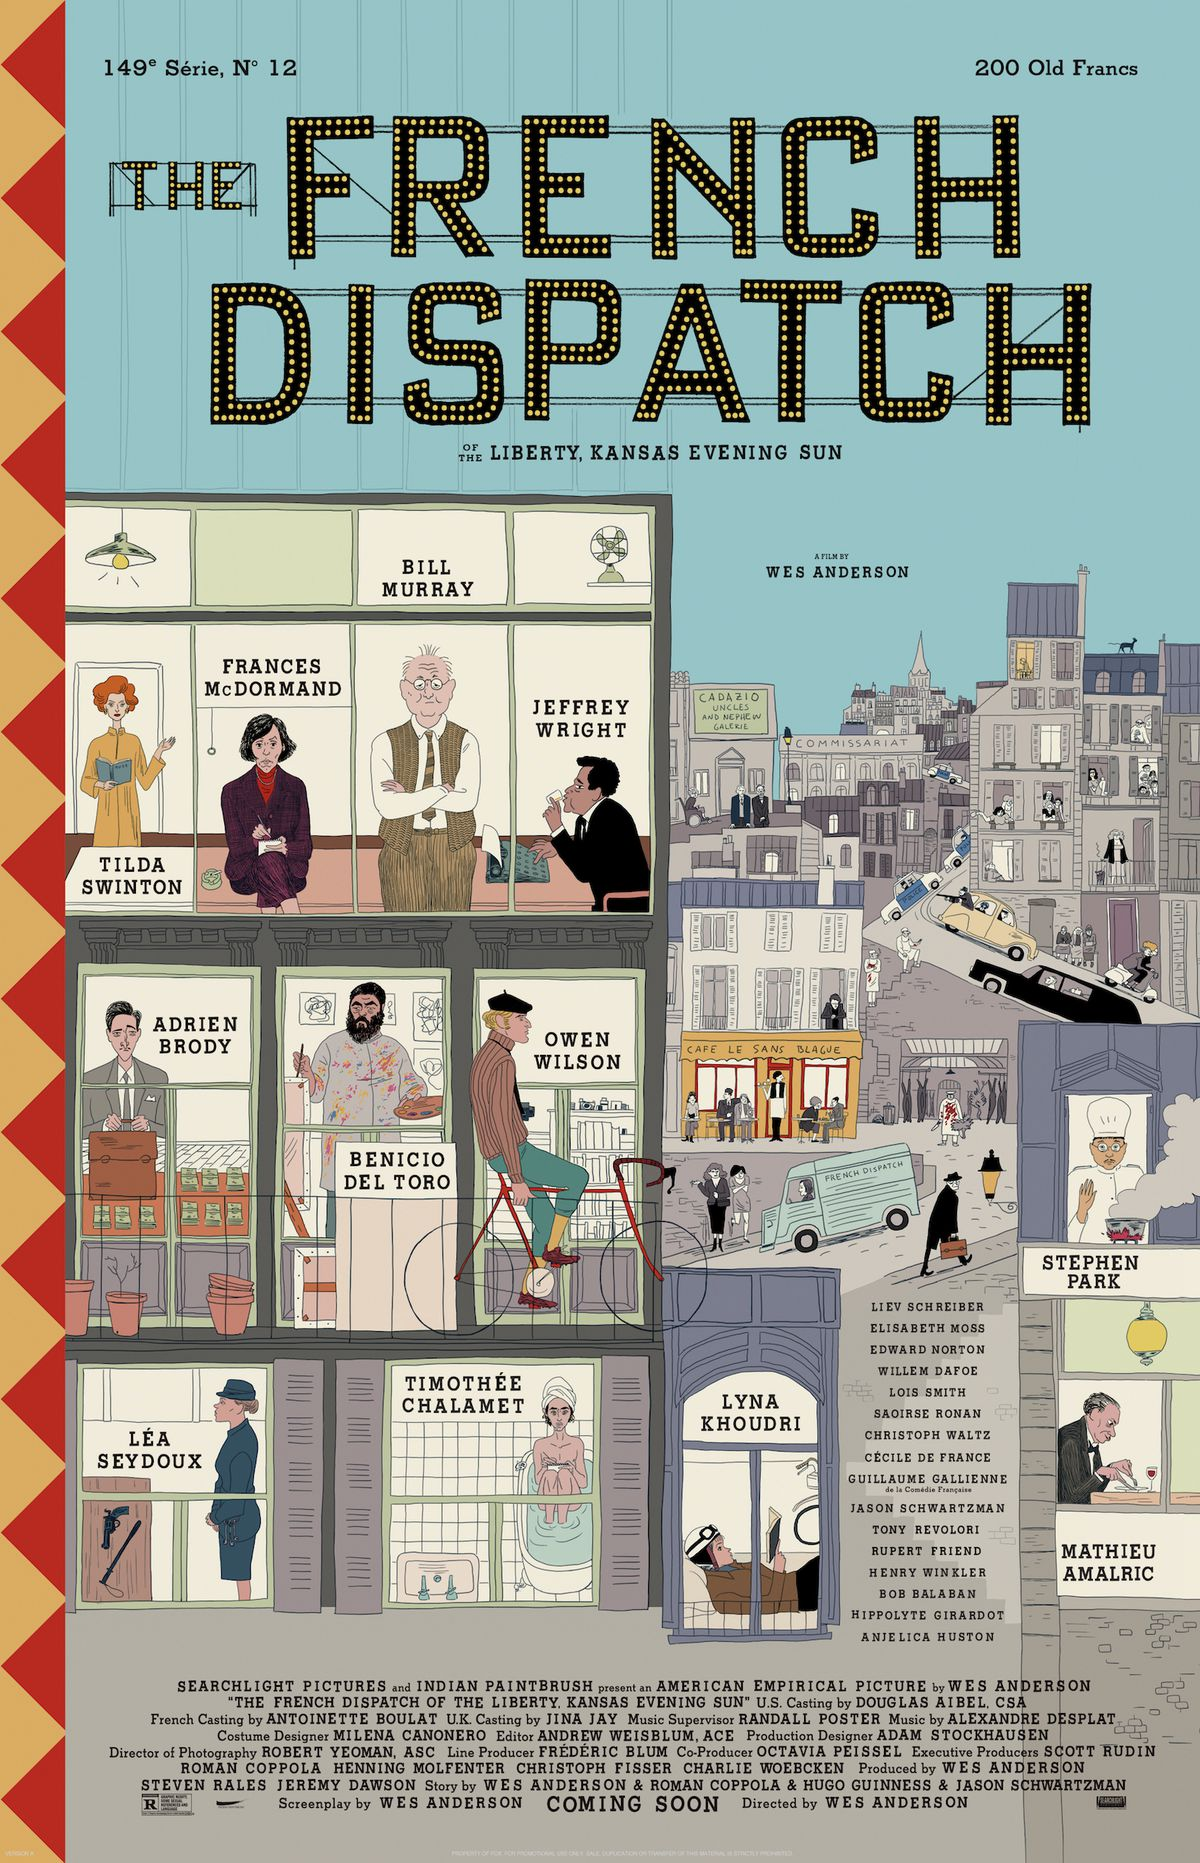 the poster for wes anderson's the french dispatch